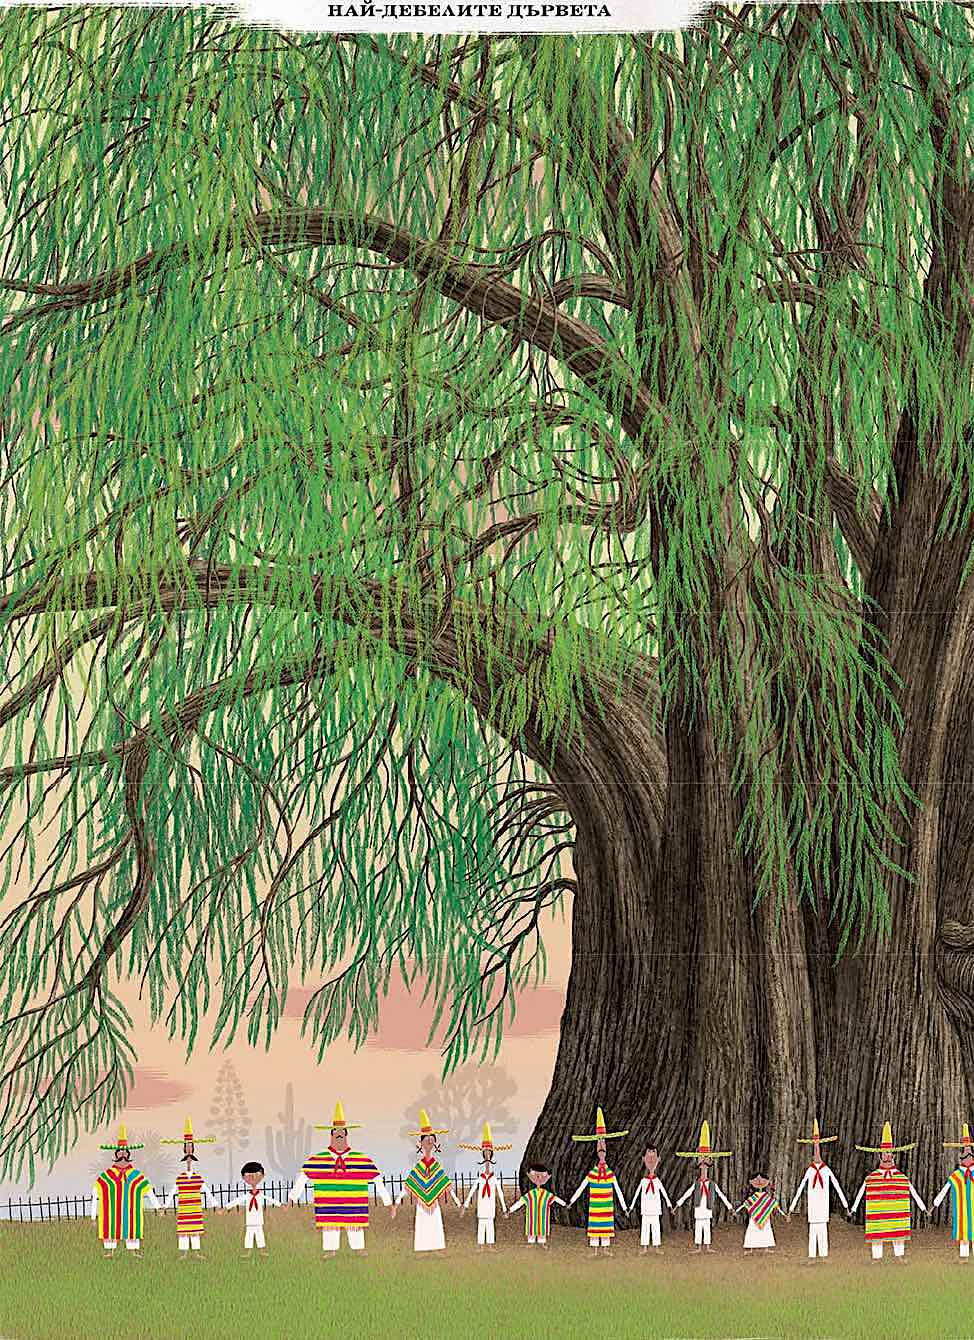 a Piotr Socha illustration of many happy people holding hands under a giant tree